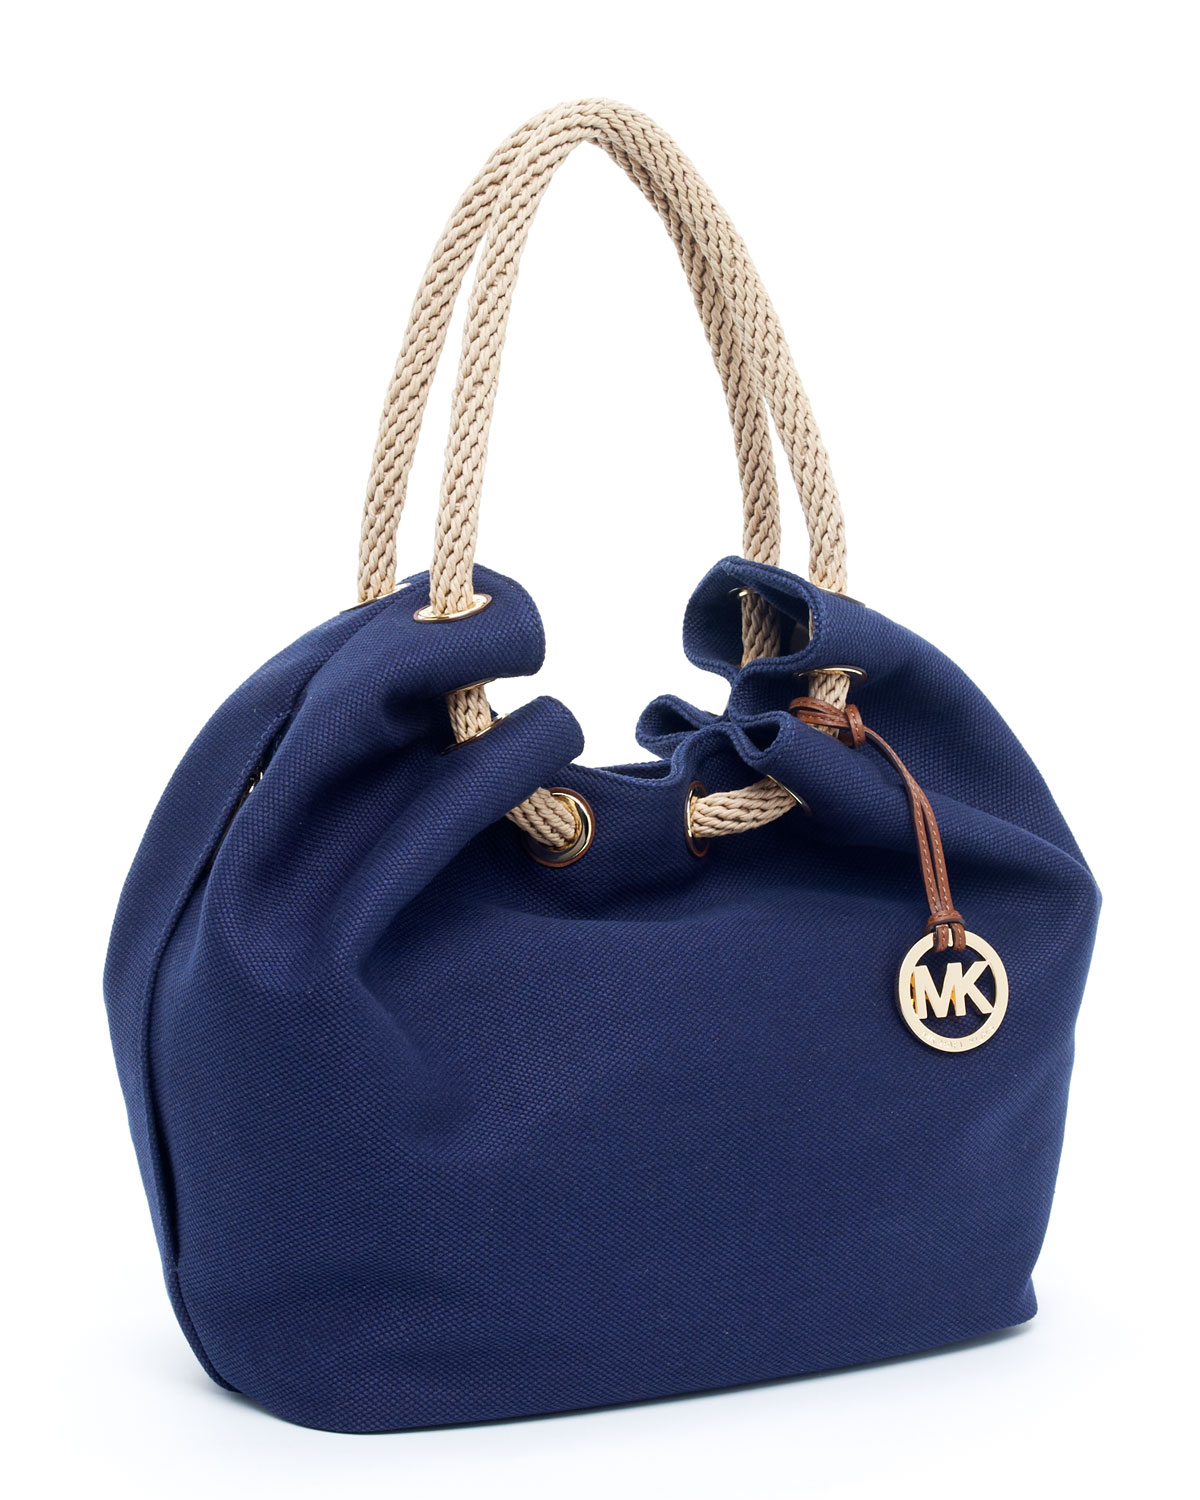 3d777e3711f756 Michael Kors Marina Large Shoulder Tote, Navy in Blue - Lyst